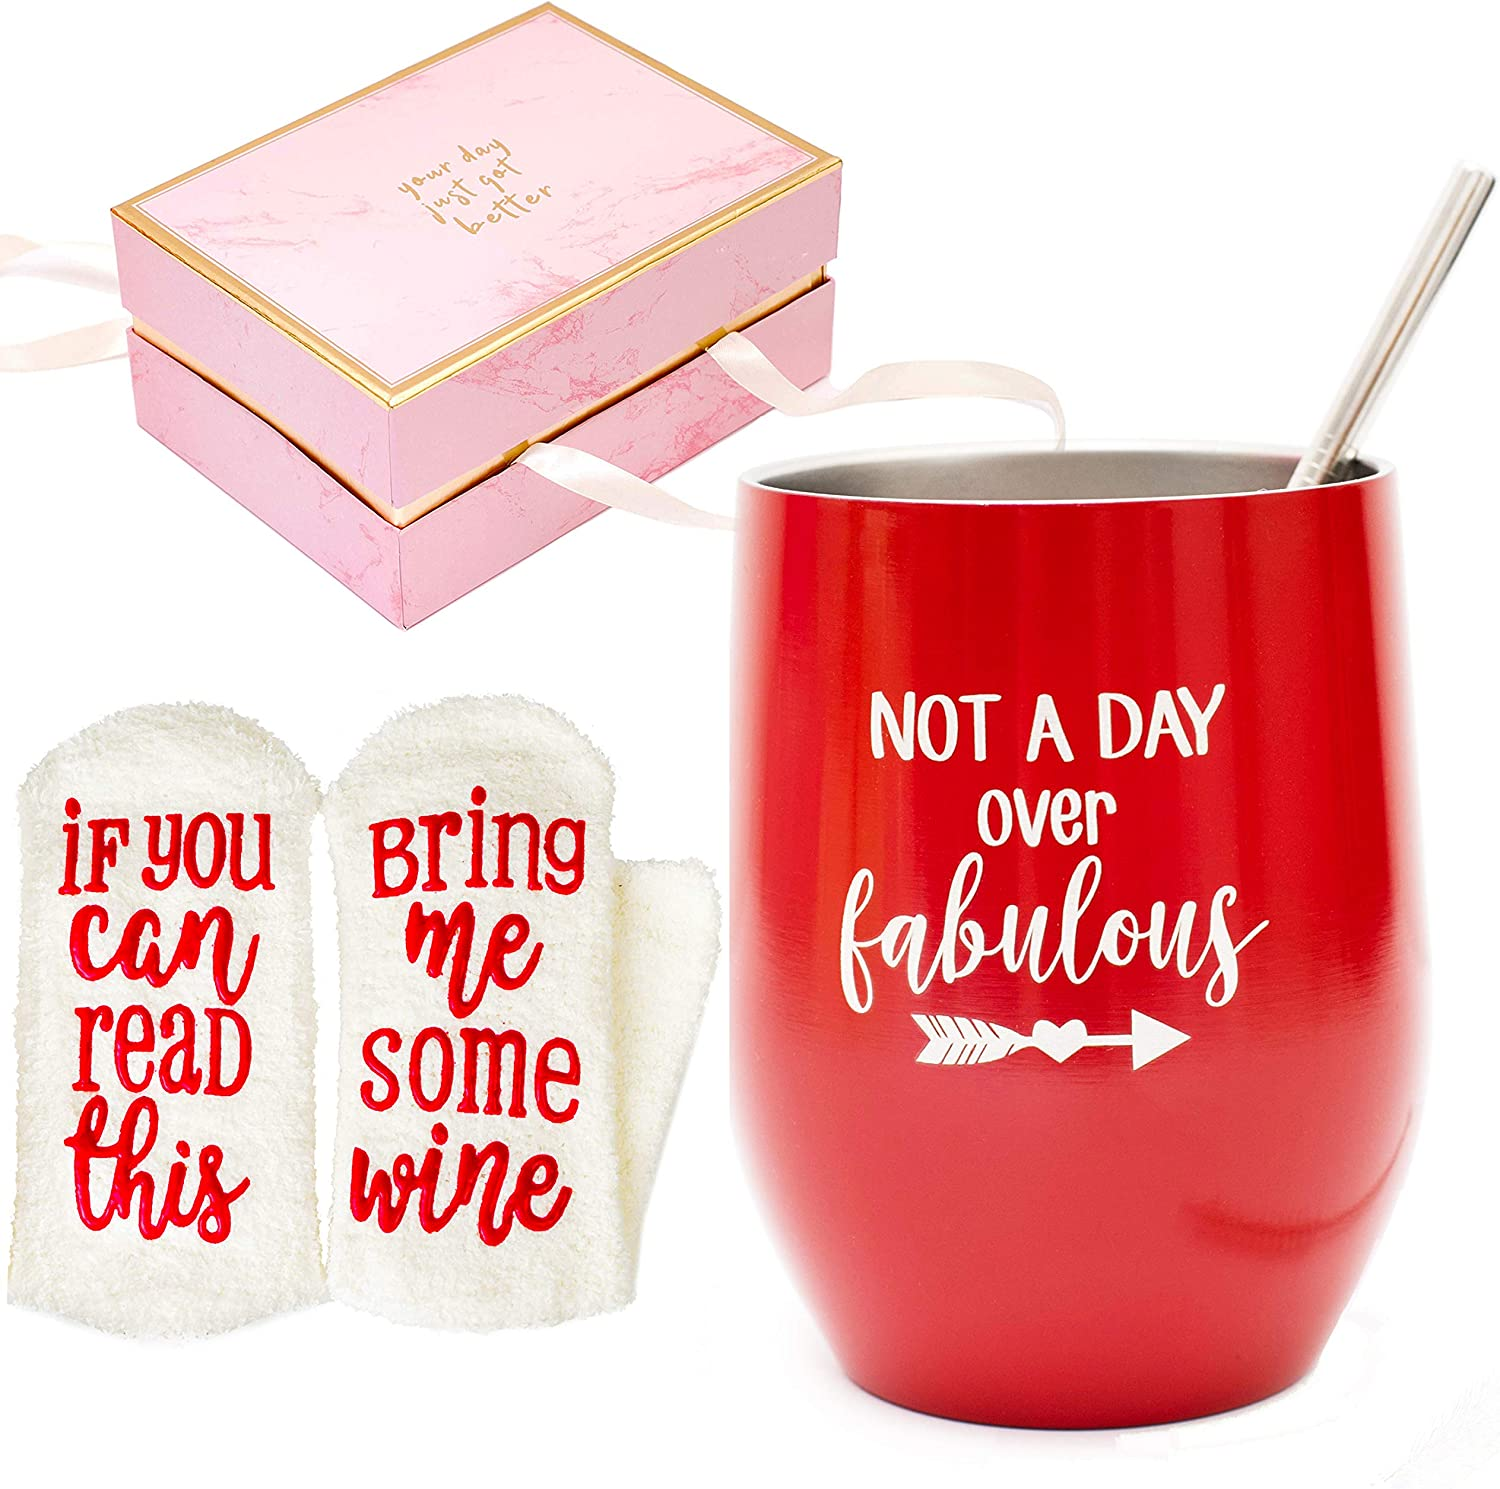 Birthday Christmas Gifts For Women Aunt Coworker Friend Female Her Mother Sister Daughter Mom Wife Grandma Secret Santa Gifts Ideas Double Insulated Wine Tumbler 12 Oz And Funny Socks Amazon Ca Home